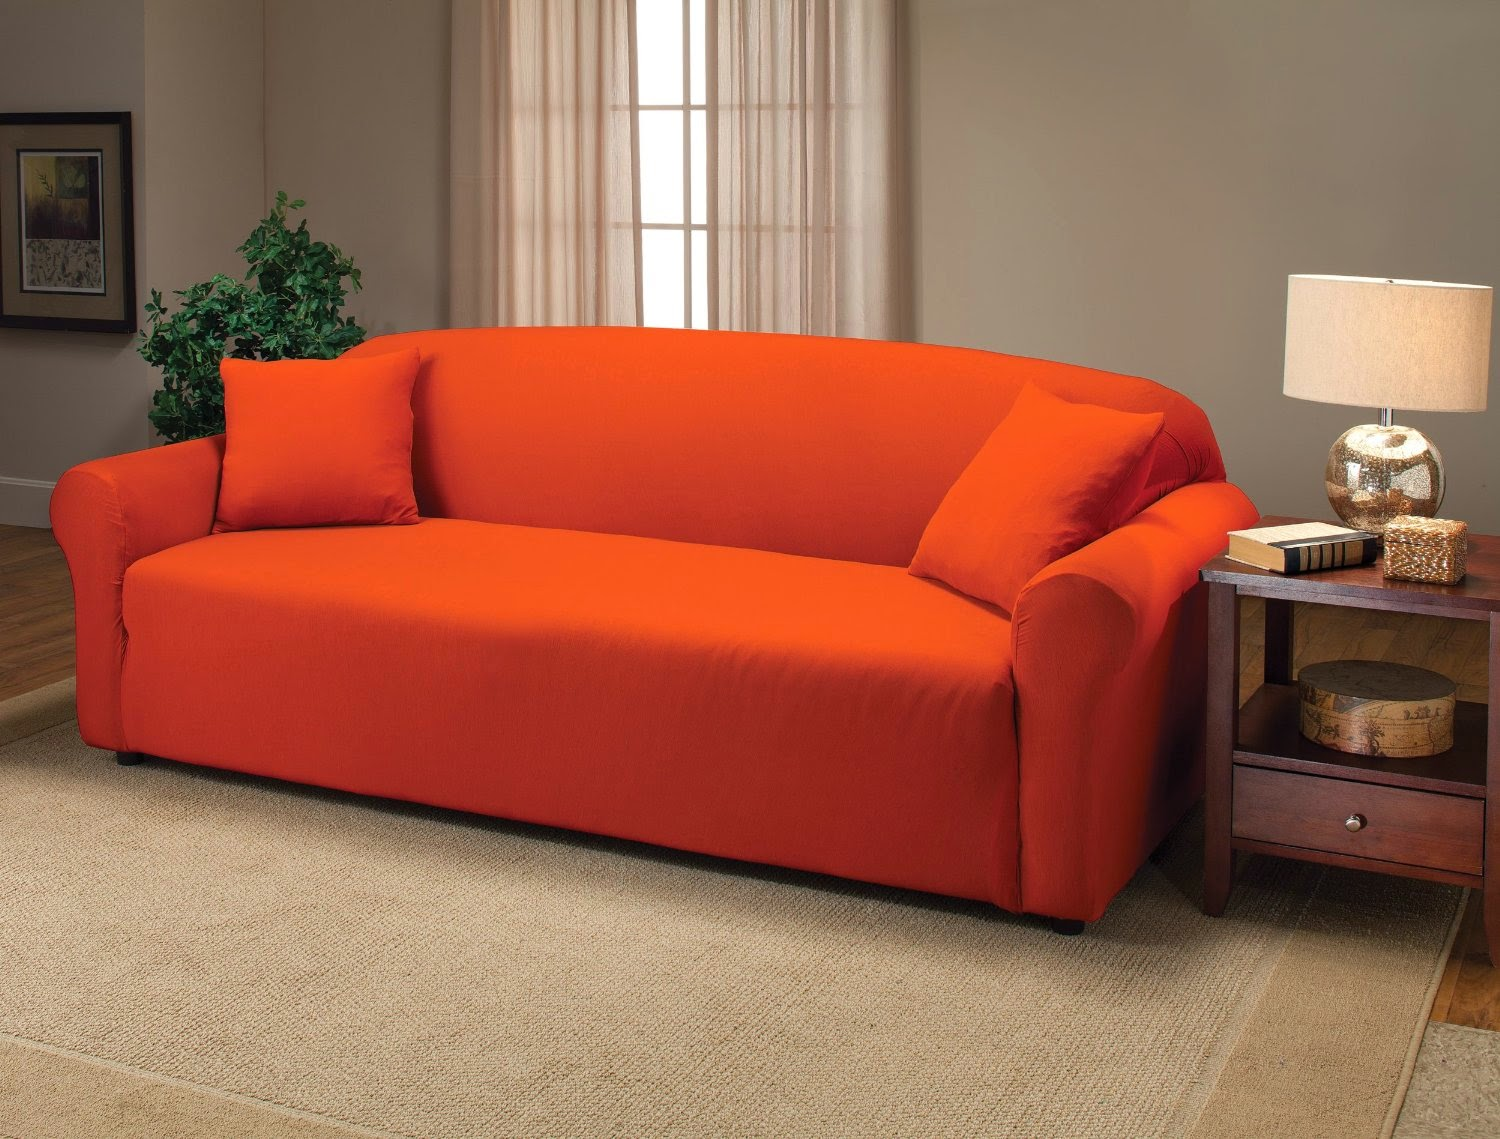 Orange couch orange couch cover for Sofa orange